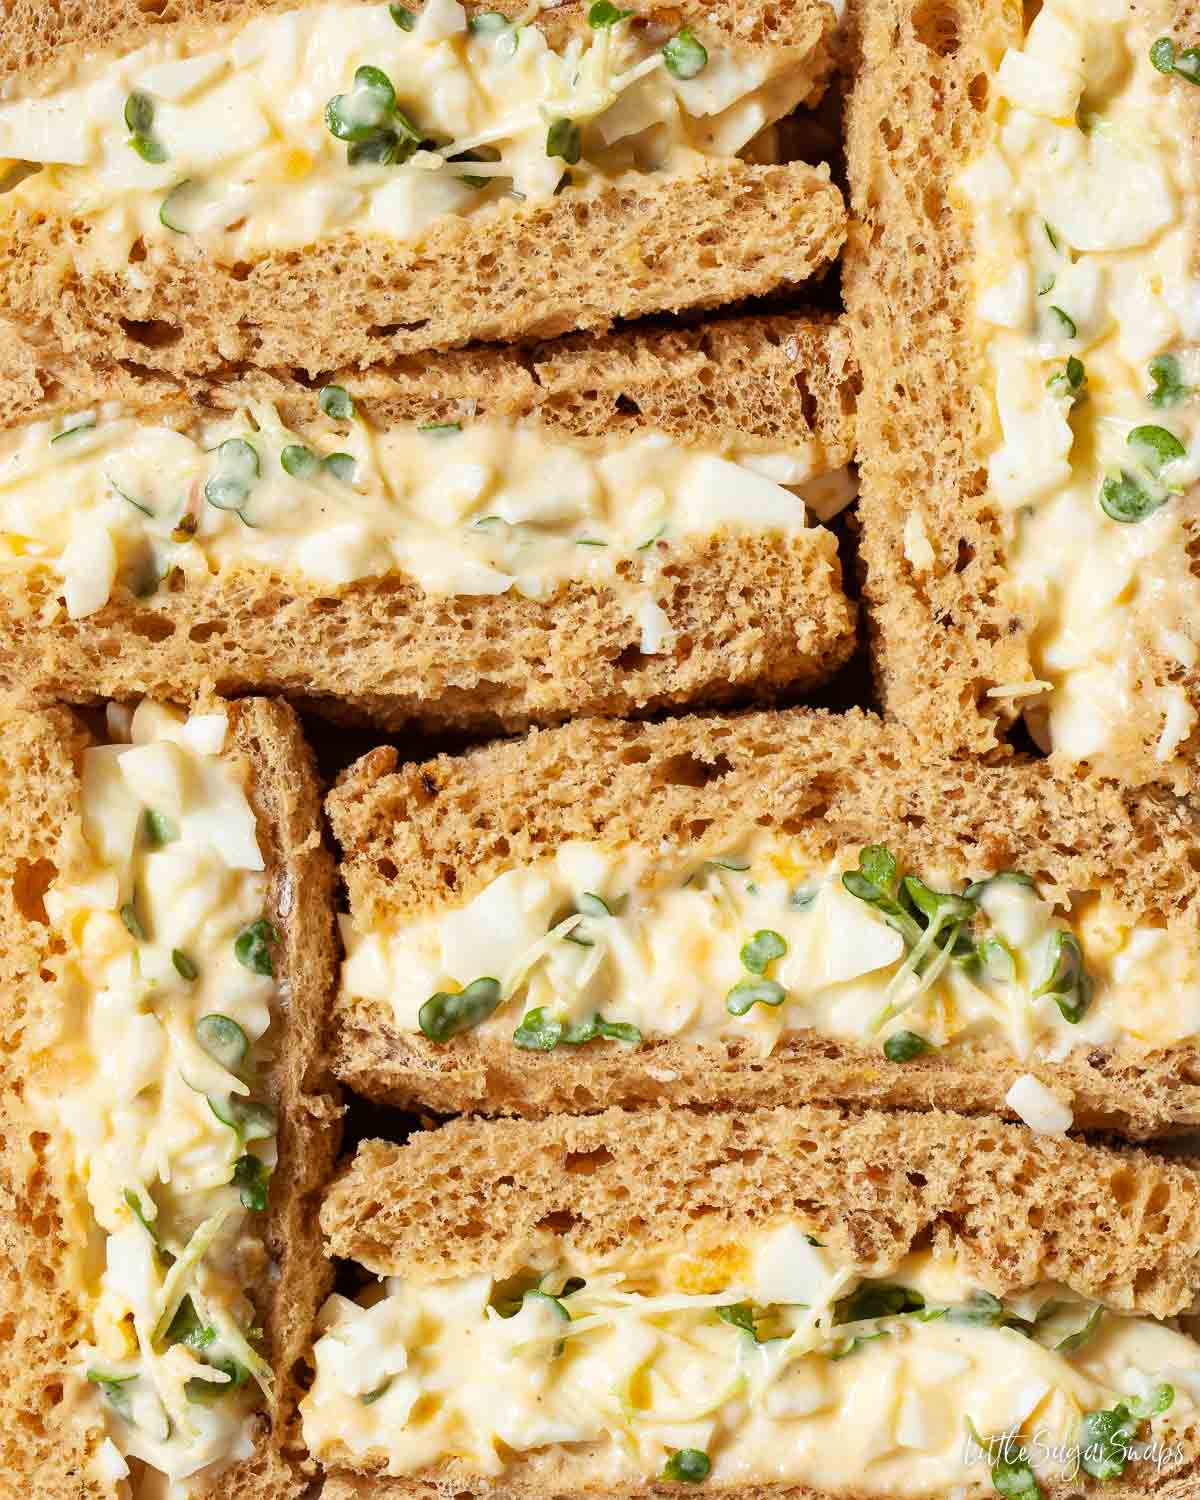 Close up of egg mayo sandwiches made on brown bread